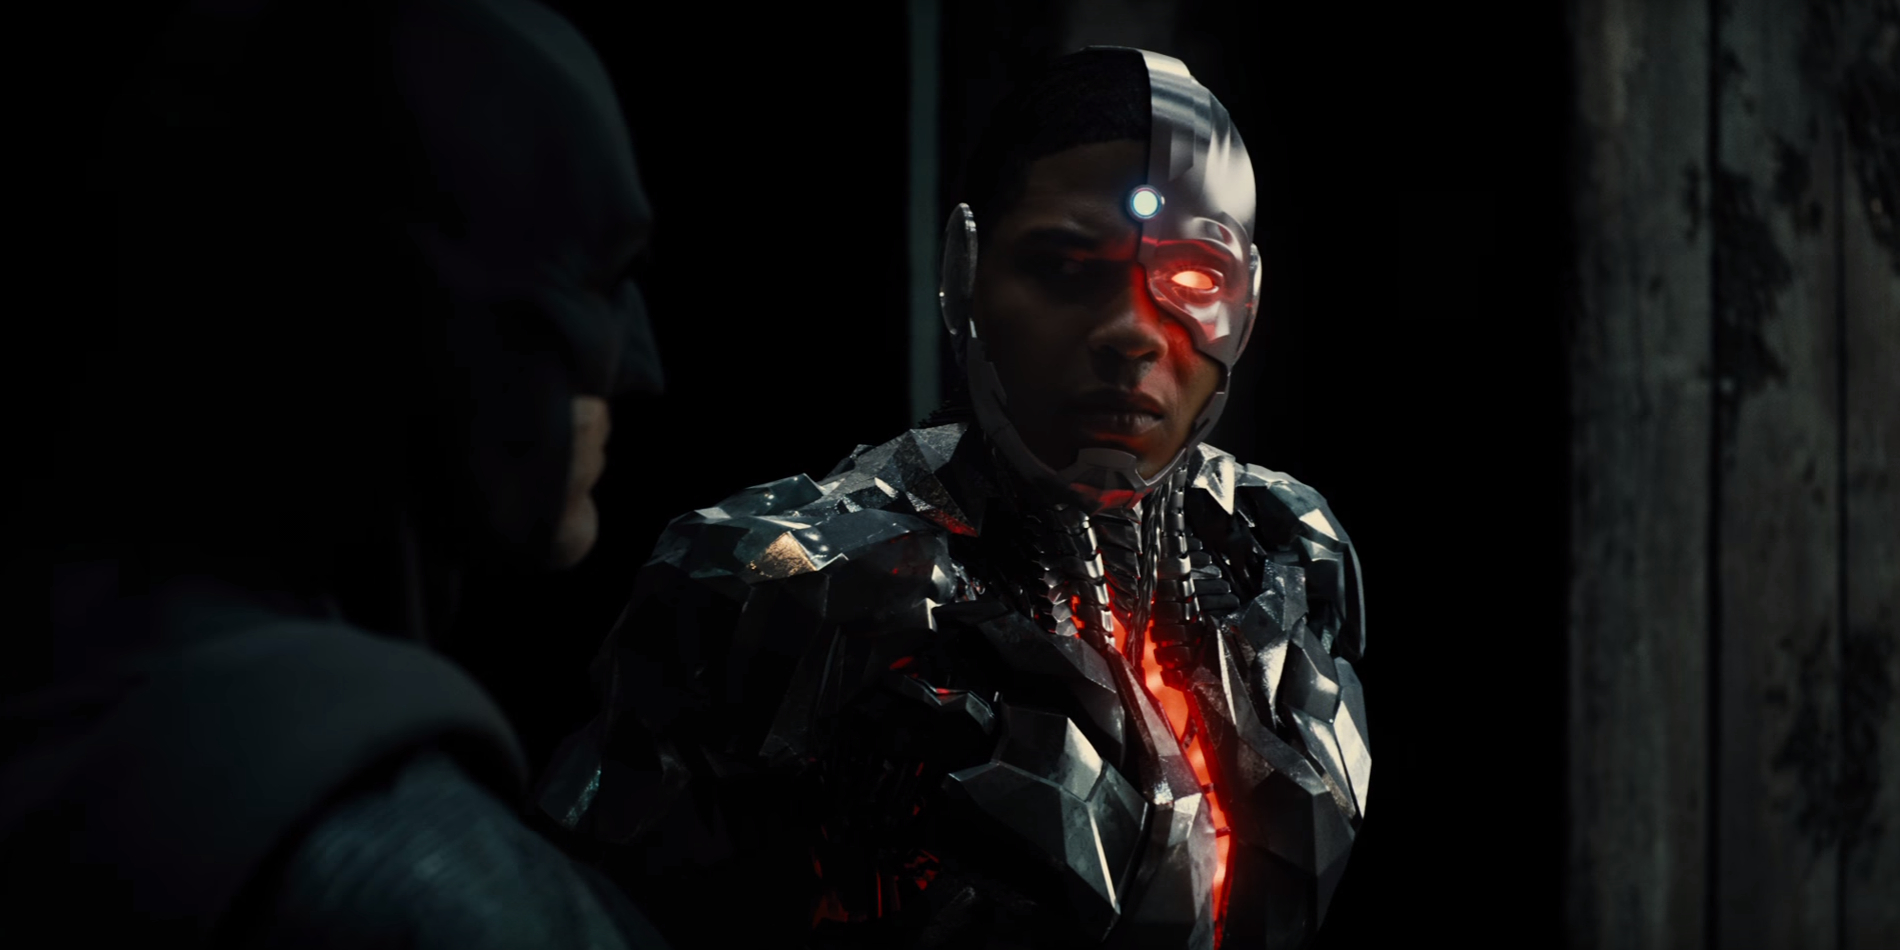 Cyborg-and-Batman-in-the-Justice-League-trailer.jpg